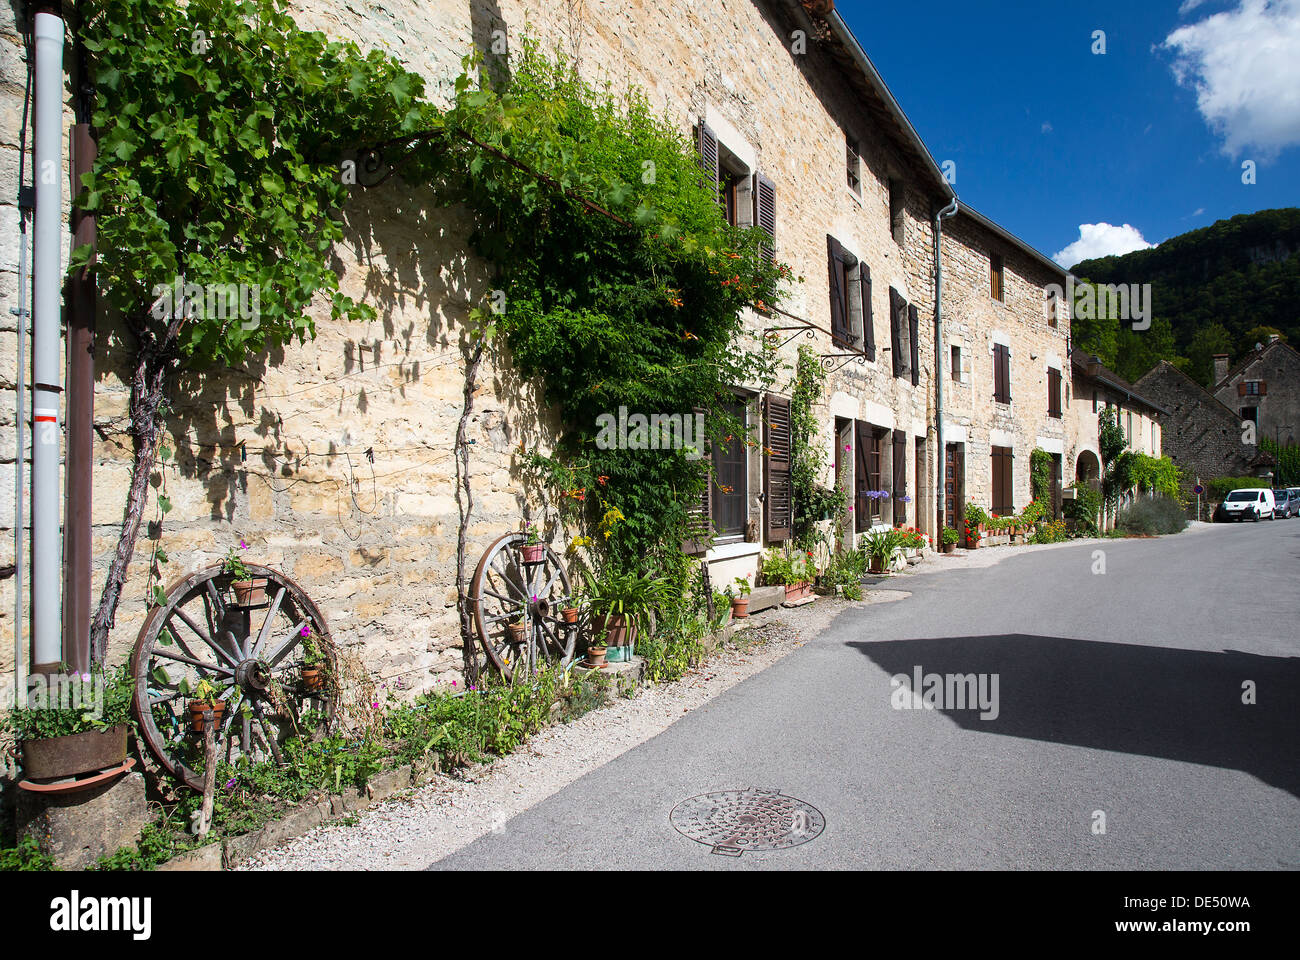 Road in Baume les Messieurs, Jura region of France - Stock Image